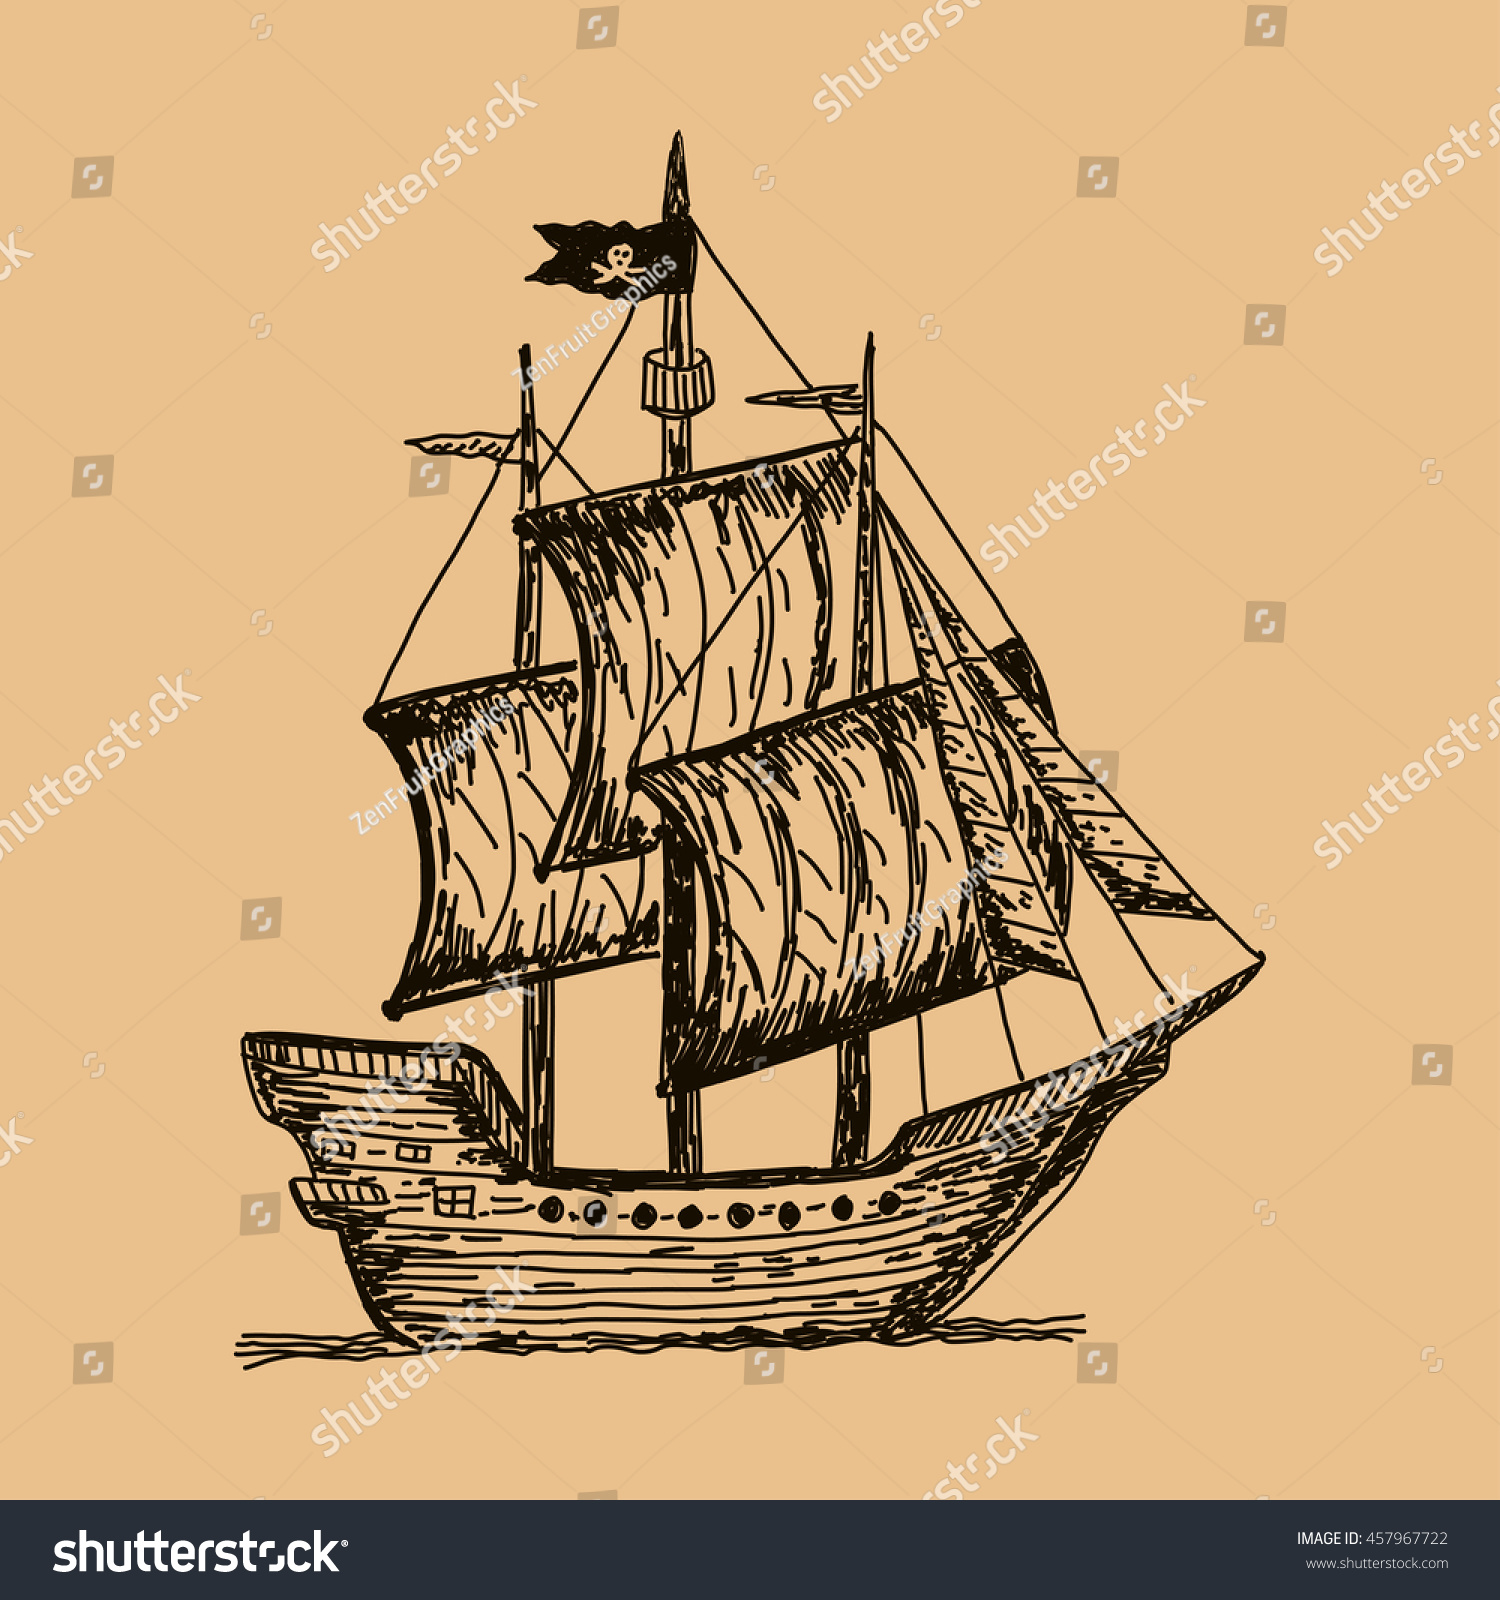 how to draw a old pirate ship